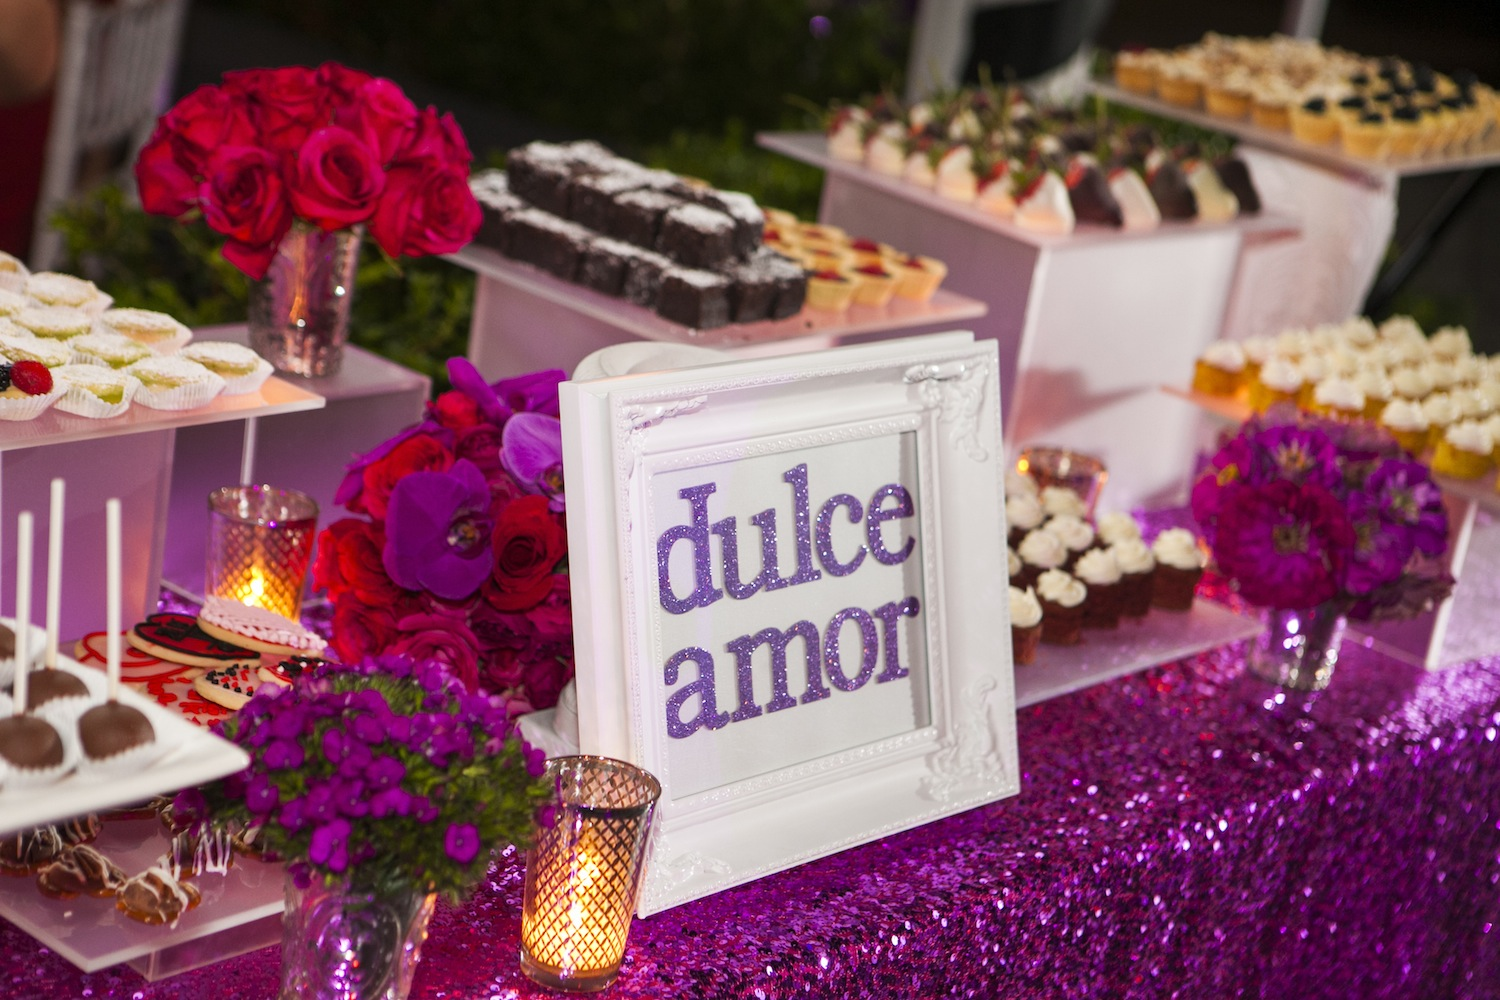 Dulce Amor sign in purple glitter at dessert table